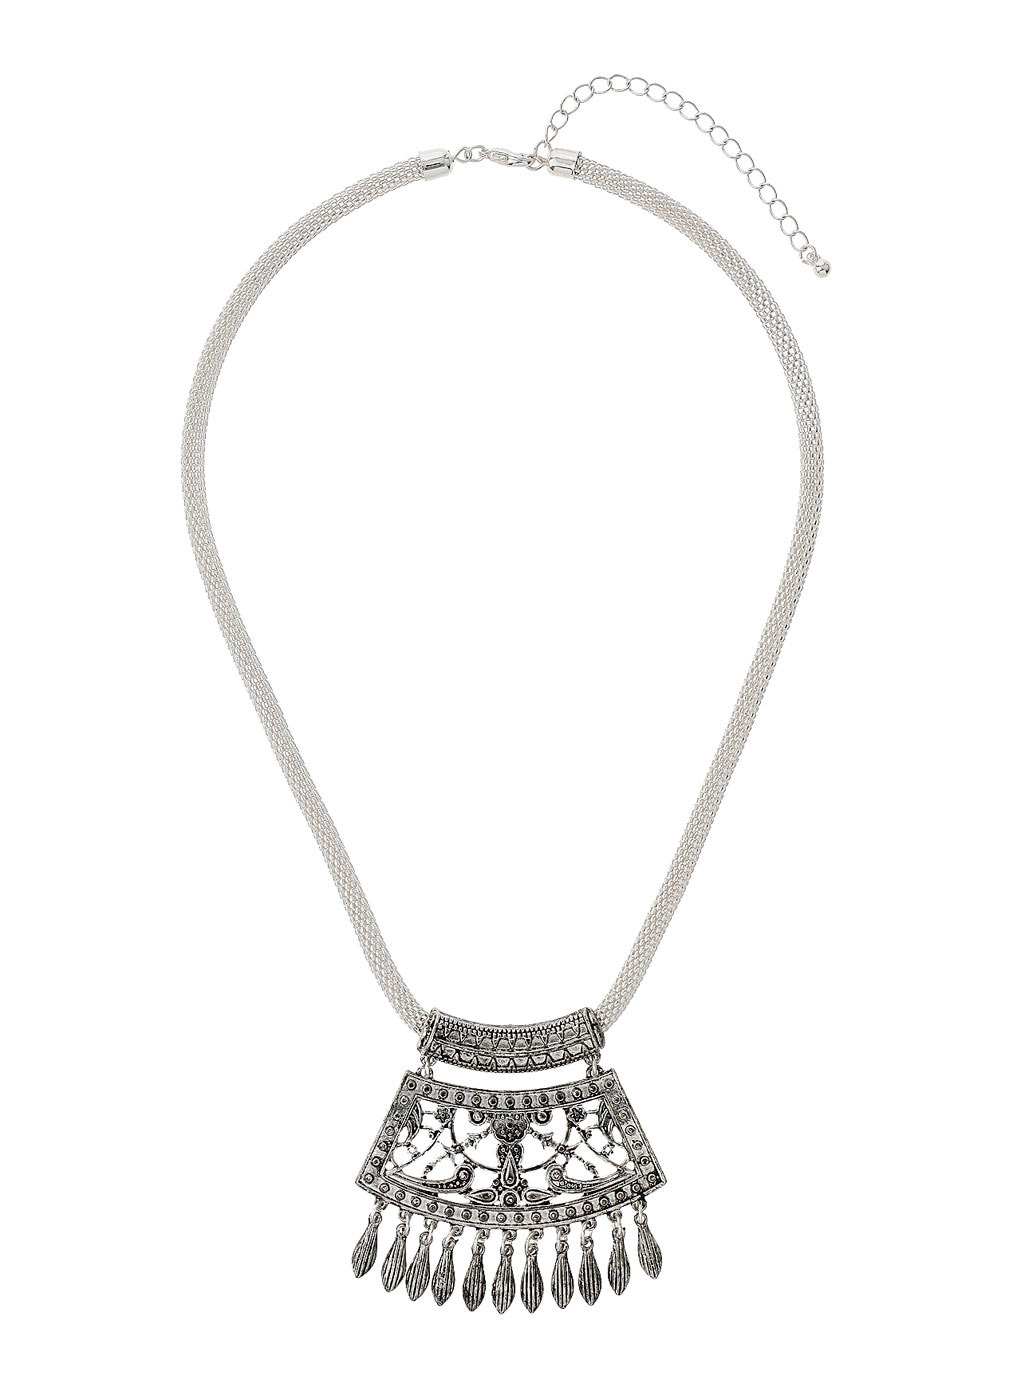 Silver Filigree Detail Necklace - predominant colour: silver; occasions: casual, evening, creative work; length: mid; size: standard; material: chain/metal; finish: metallic; style: bib/statement; season: s/s 2014